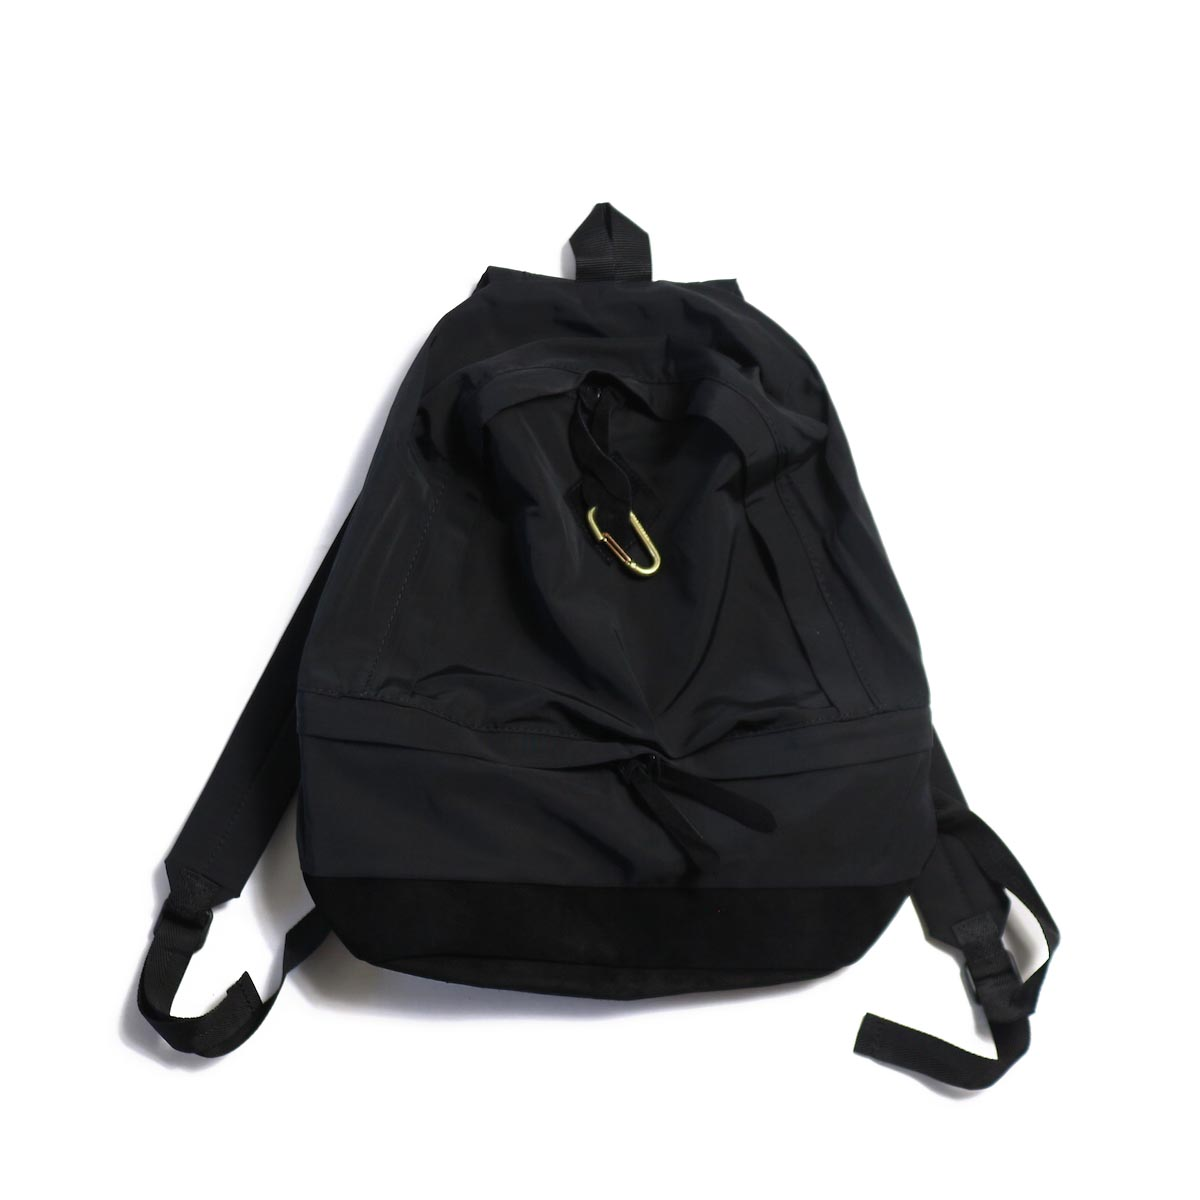 MASTER & Co. / 60/40CLOTH DAY PACK + KARABINER -BLACK